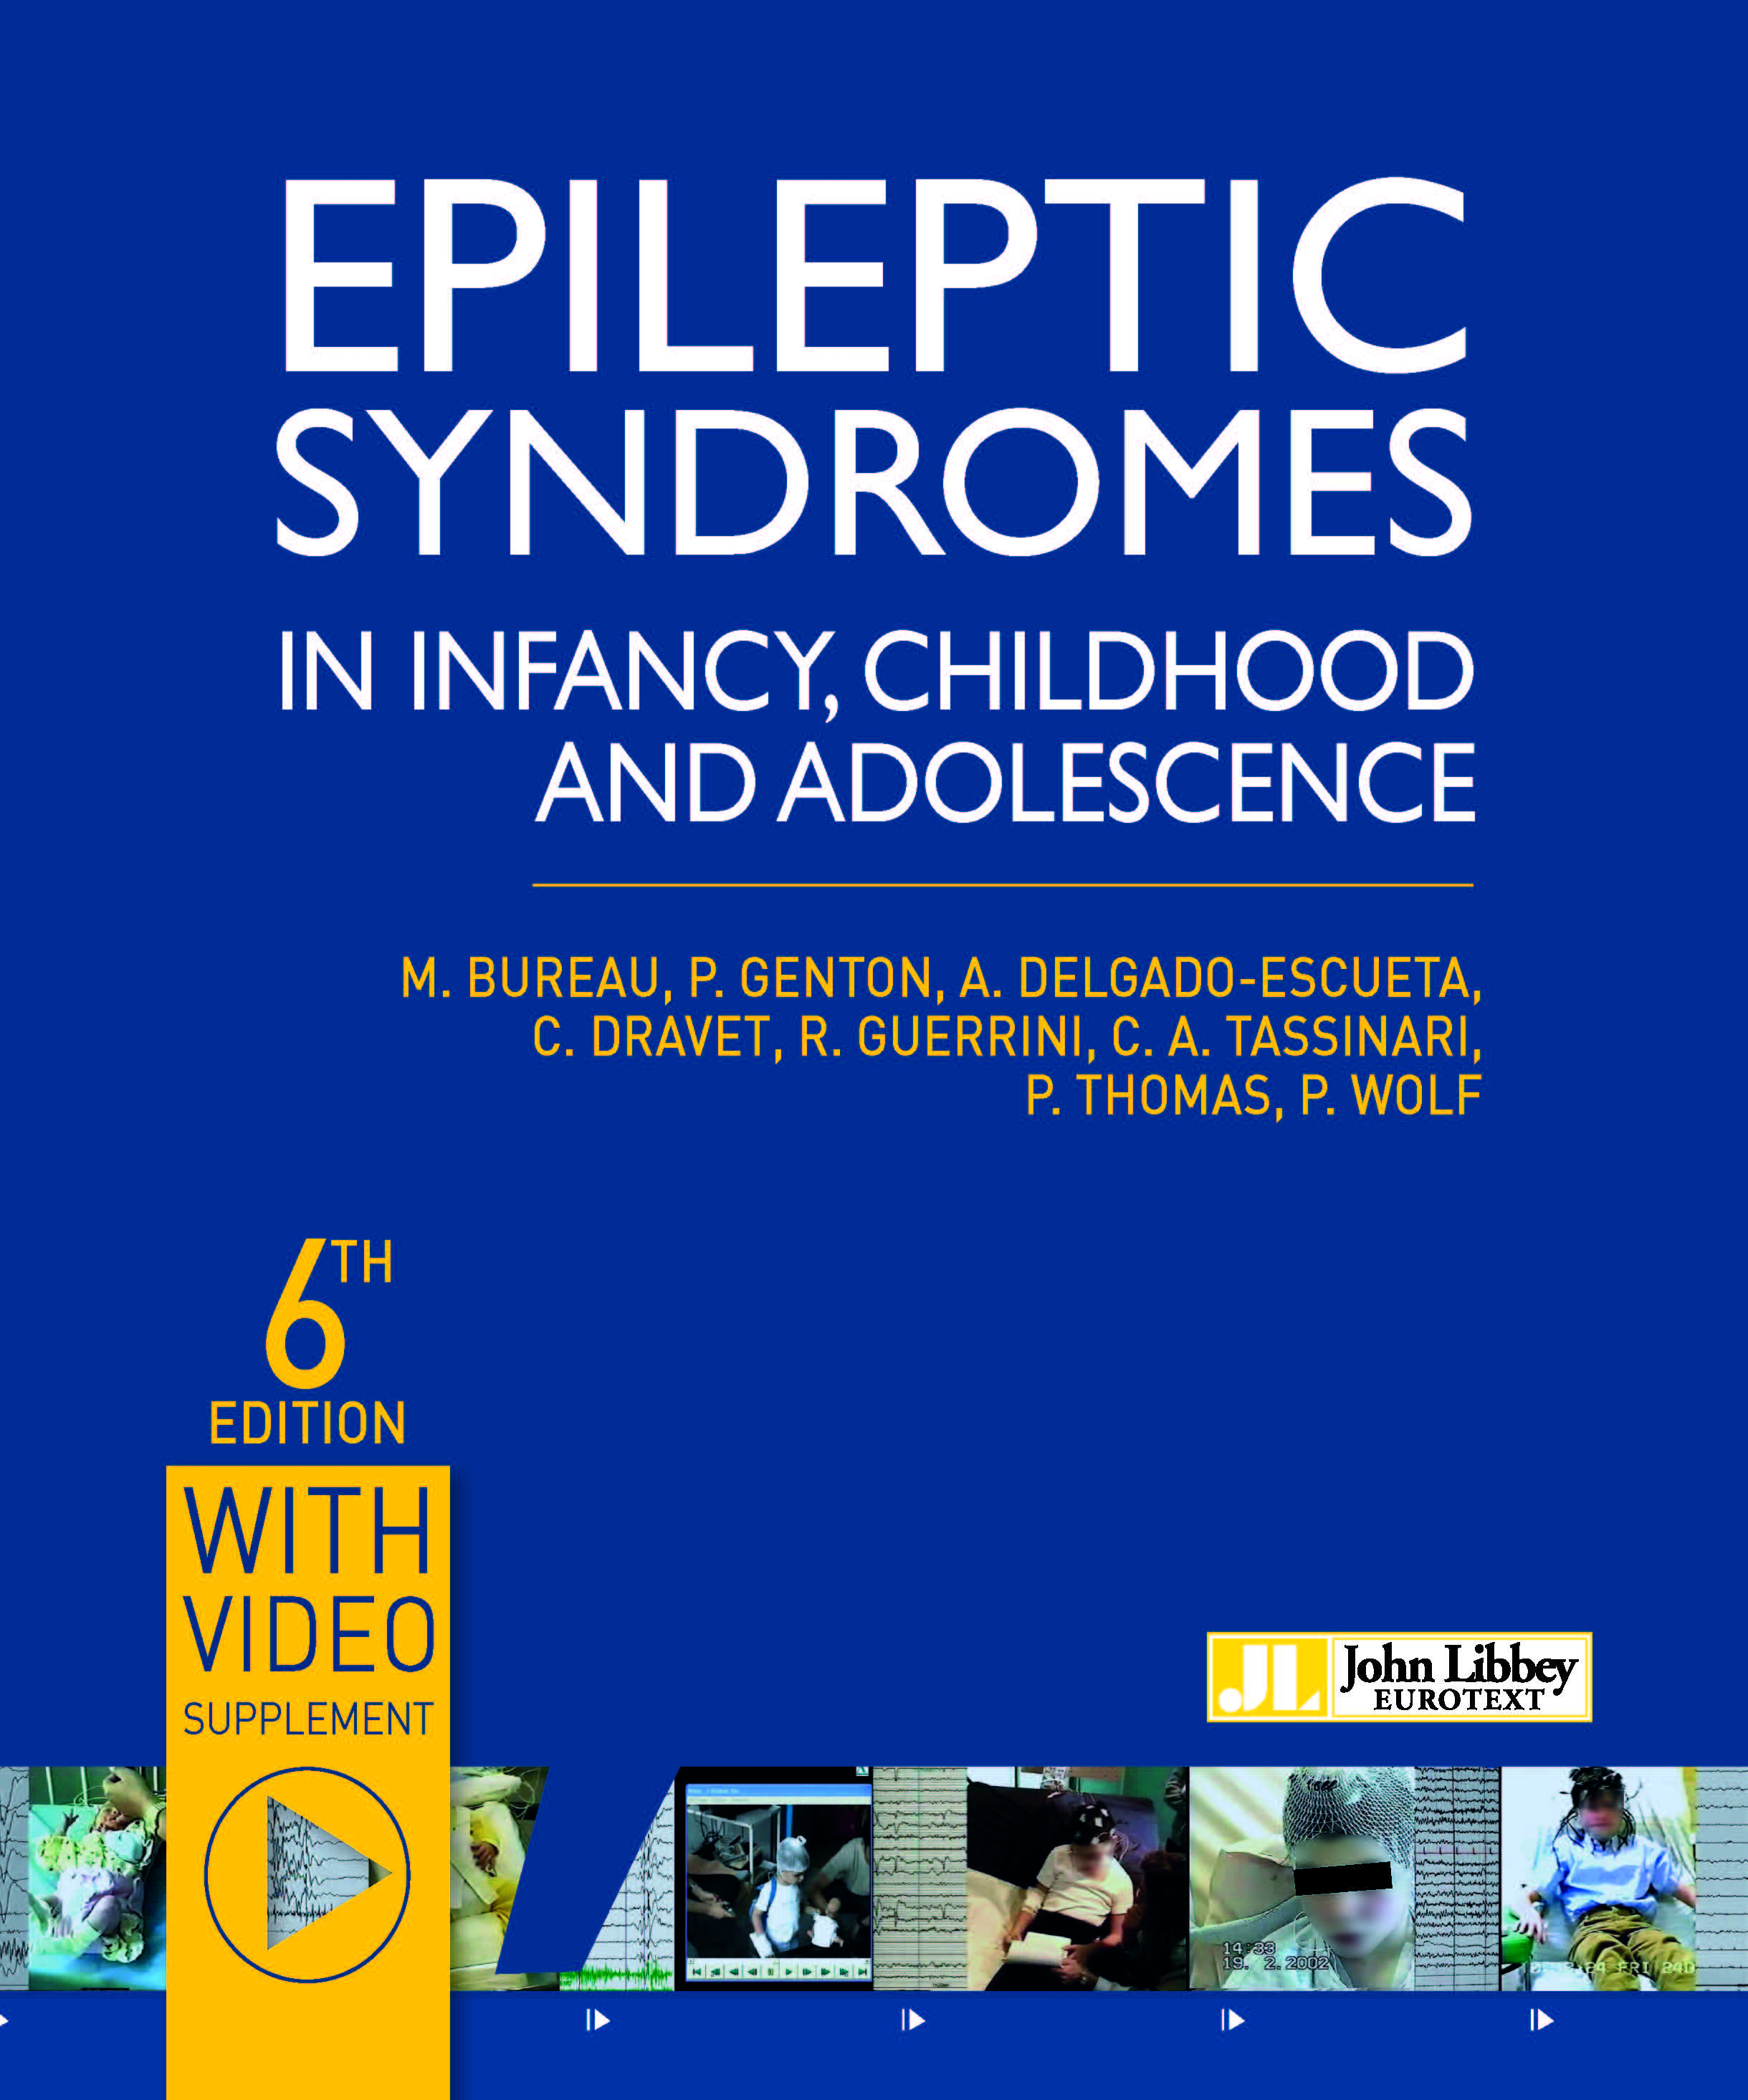 syndromes epileptic